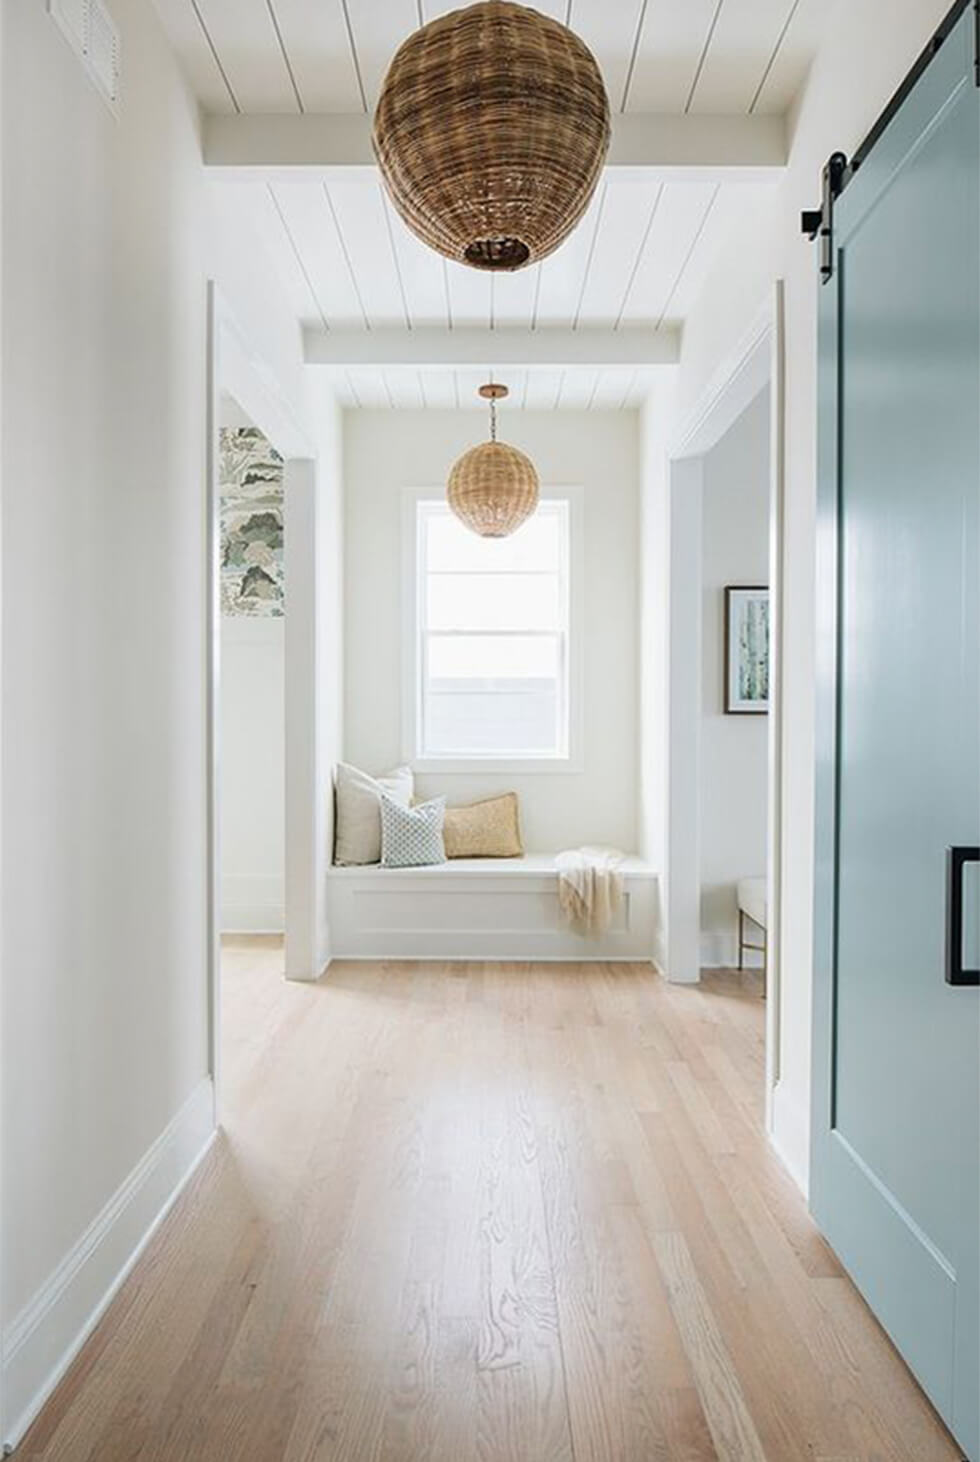 White and airy hallway with rattan lamps